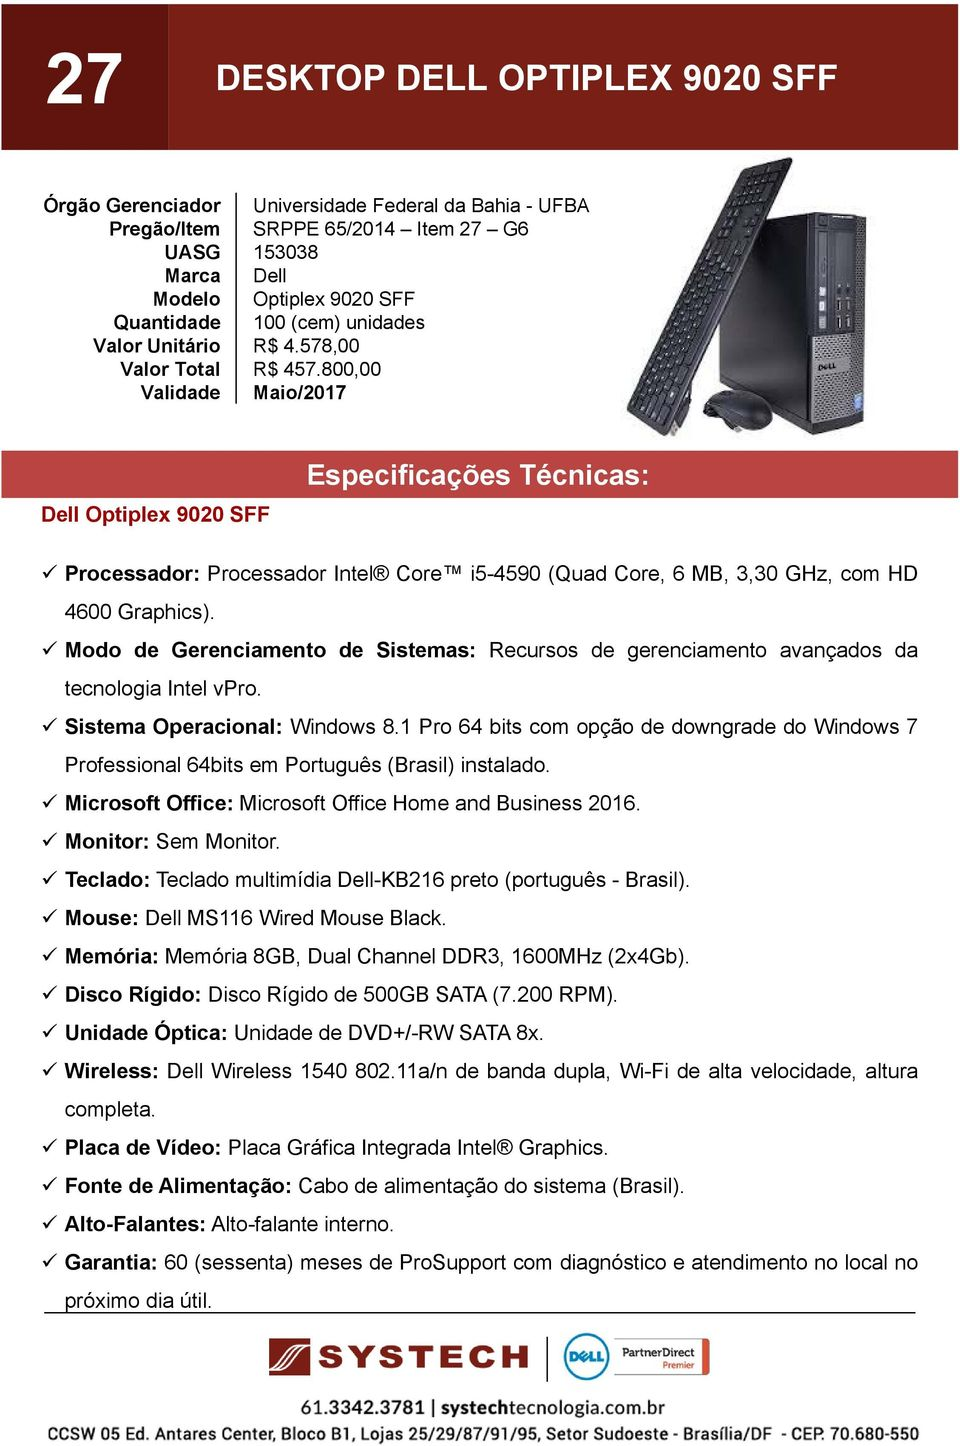 1 Pro 64 bits com opção de downgrade do Windows 7 Microsoft Office: Microsoft Office Home and Business 2016. Monitor: Sem Monitor. Teclado: Teclado multimídia -KB216 preto (português - Brasil).